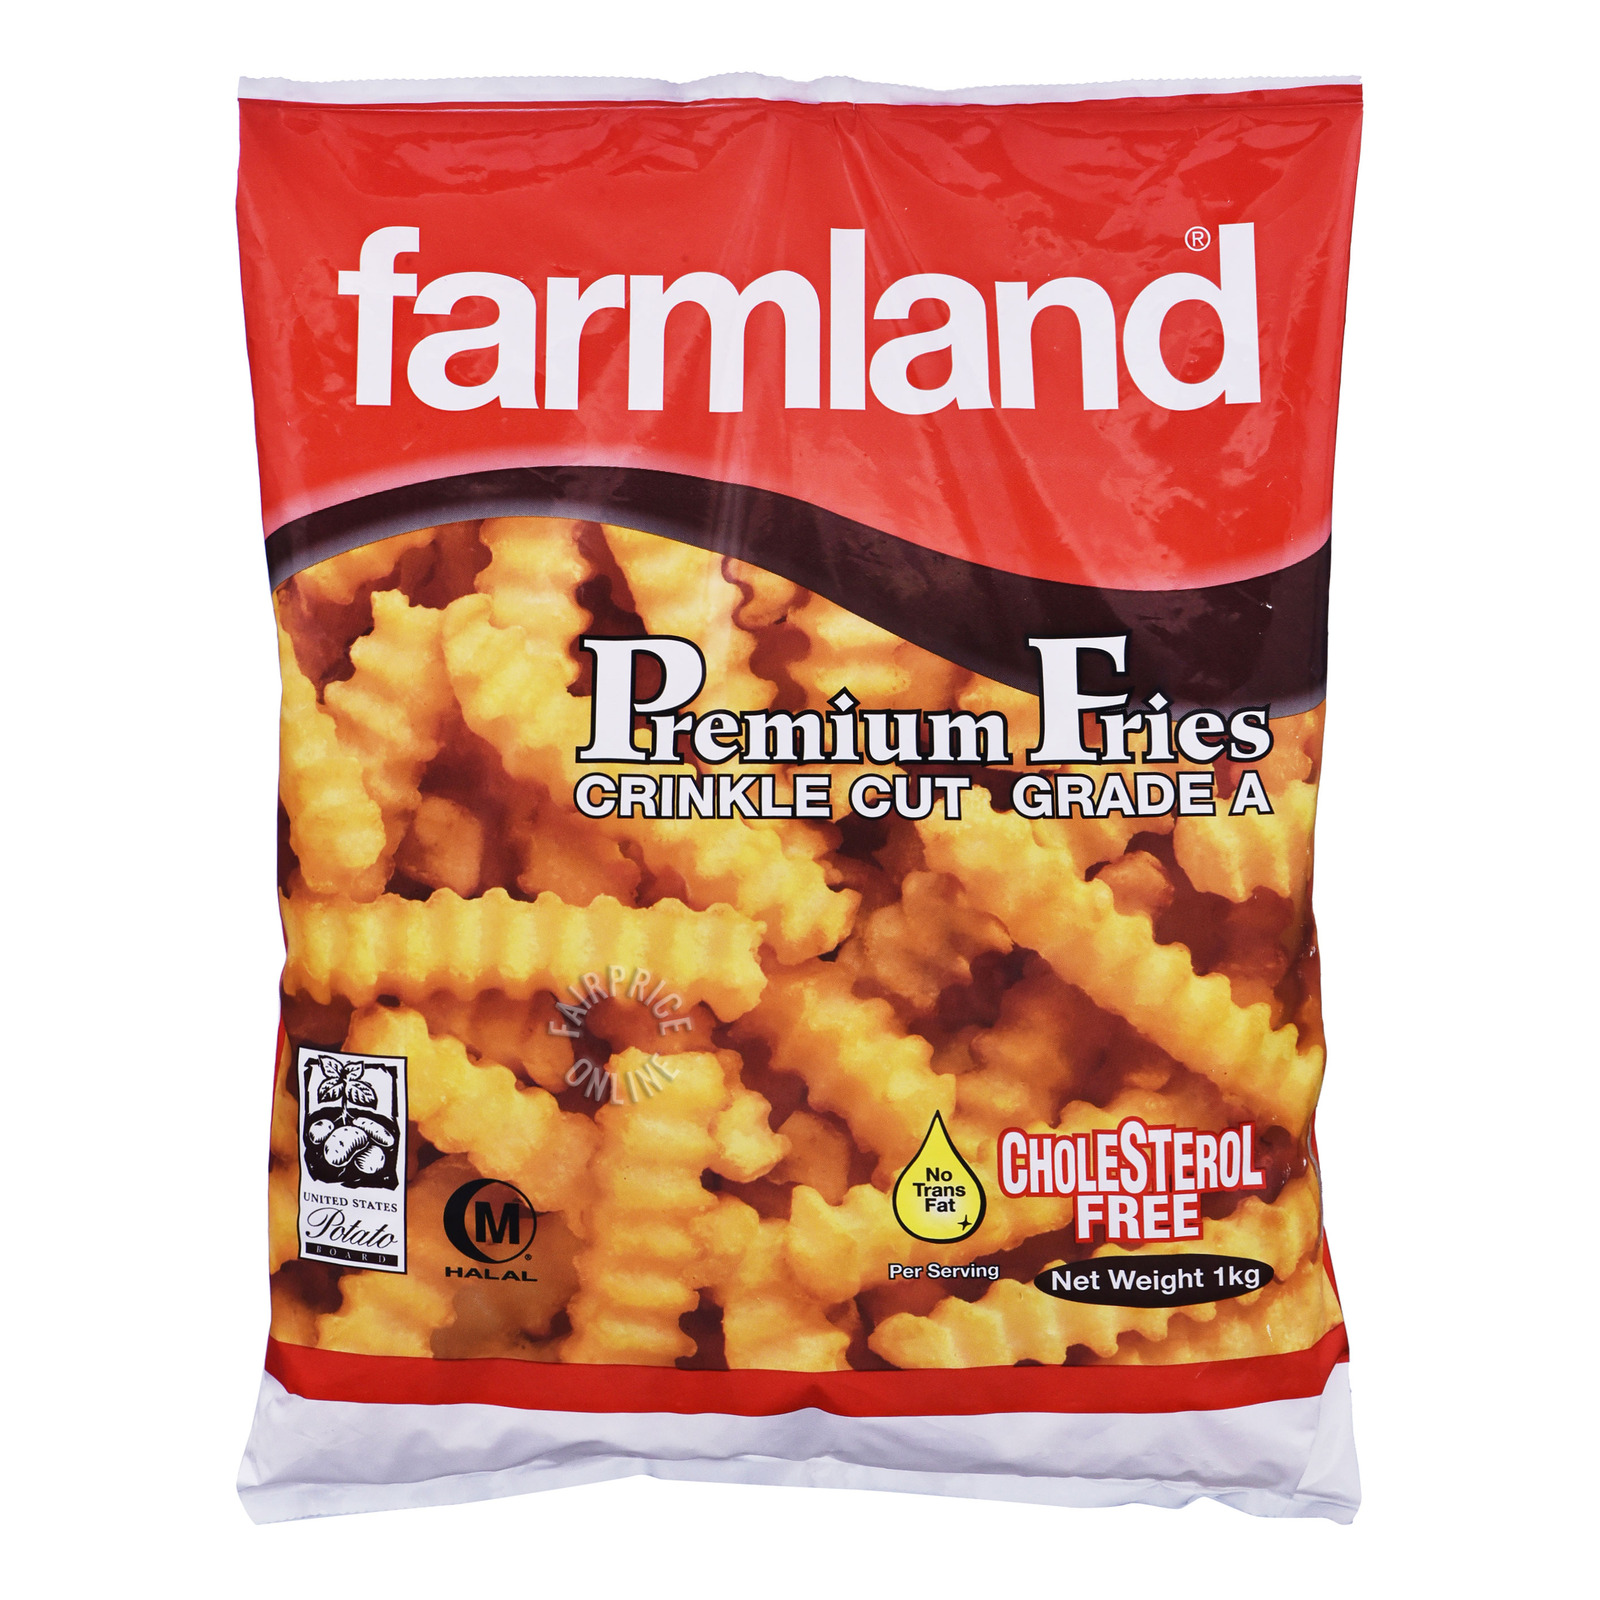 Farmland Frozen Premium Fries - Crinkle Cut